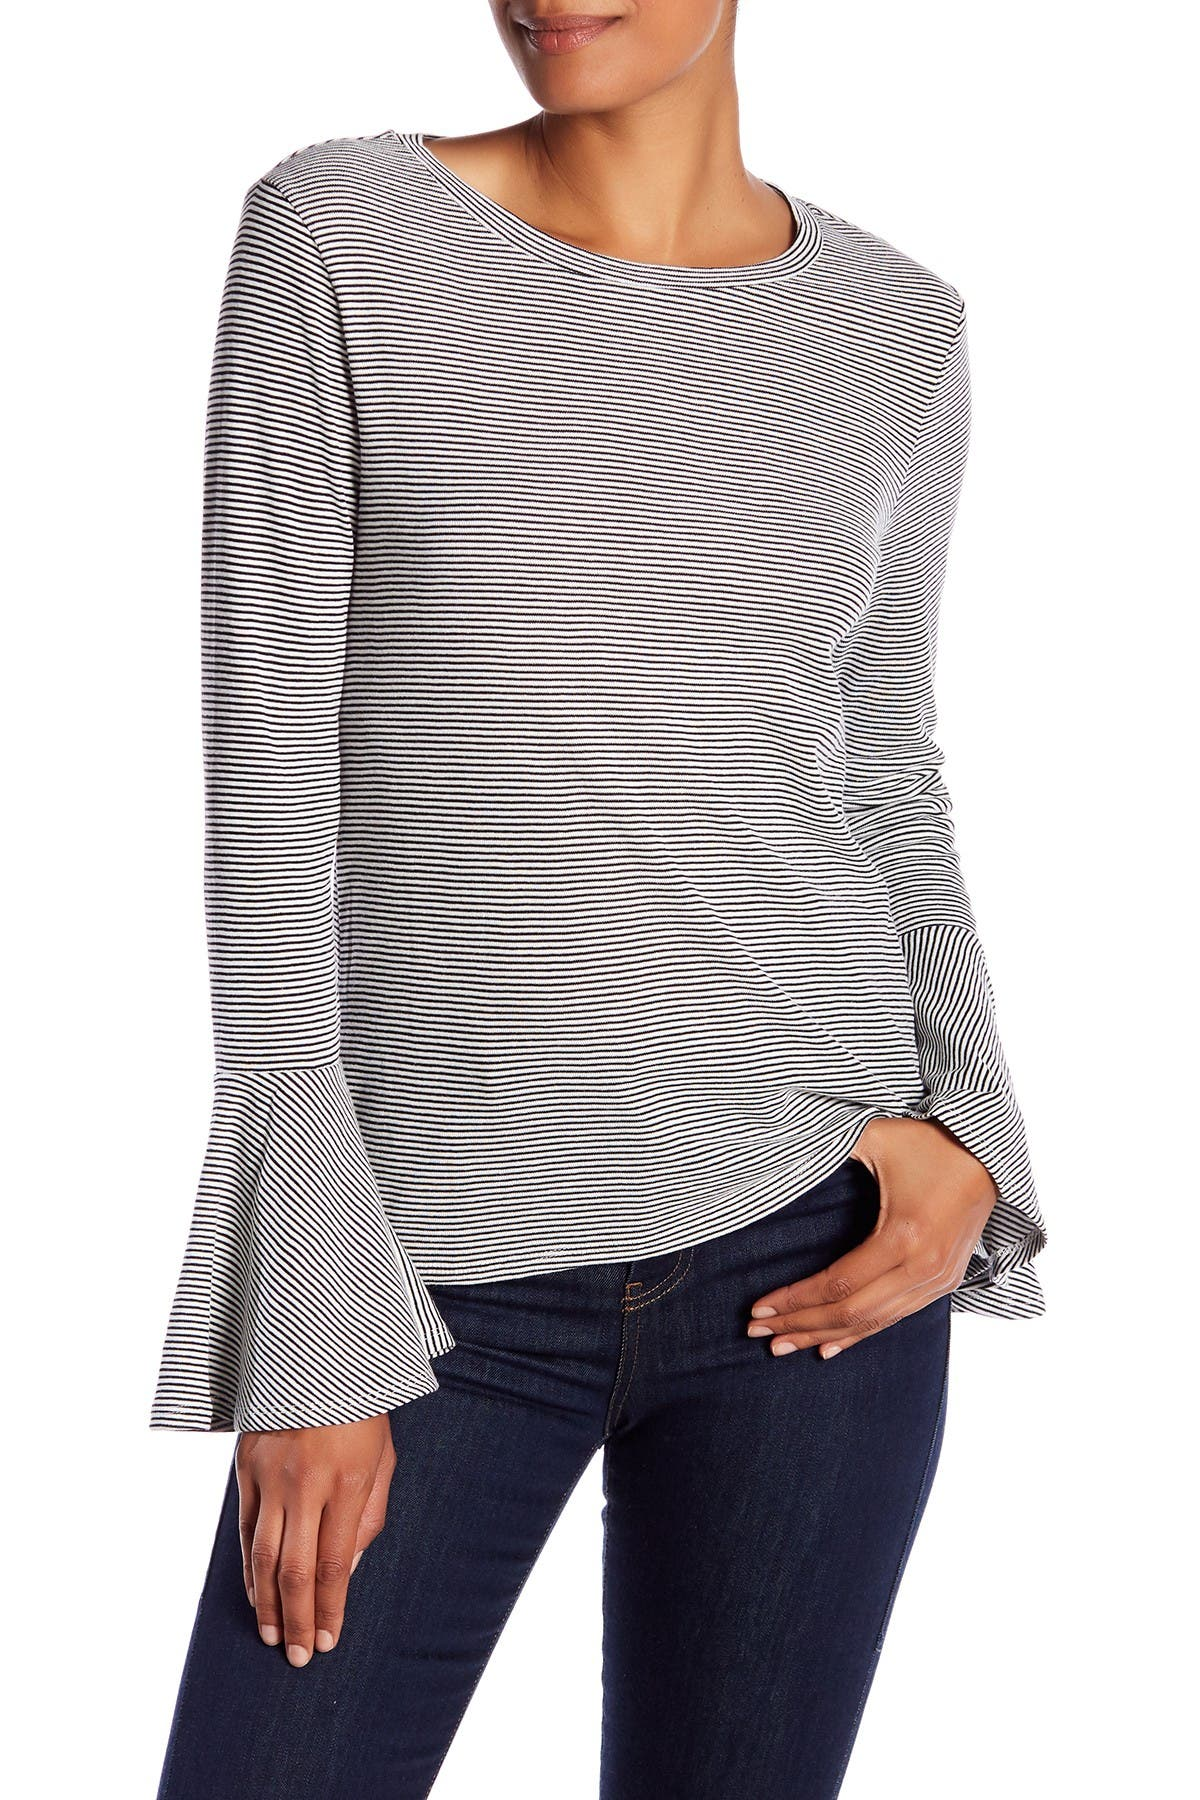 Image of Philosophy Apparel Bell Sleeve Striped Tee